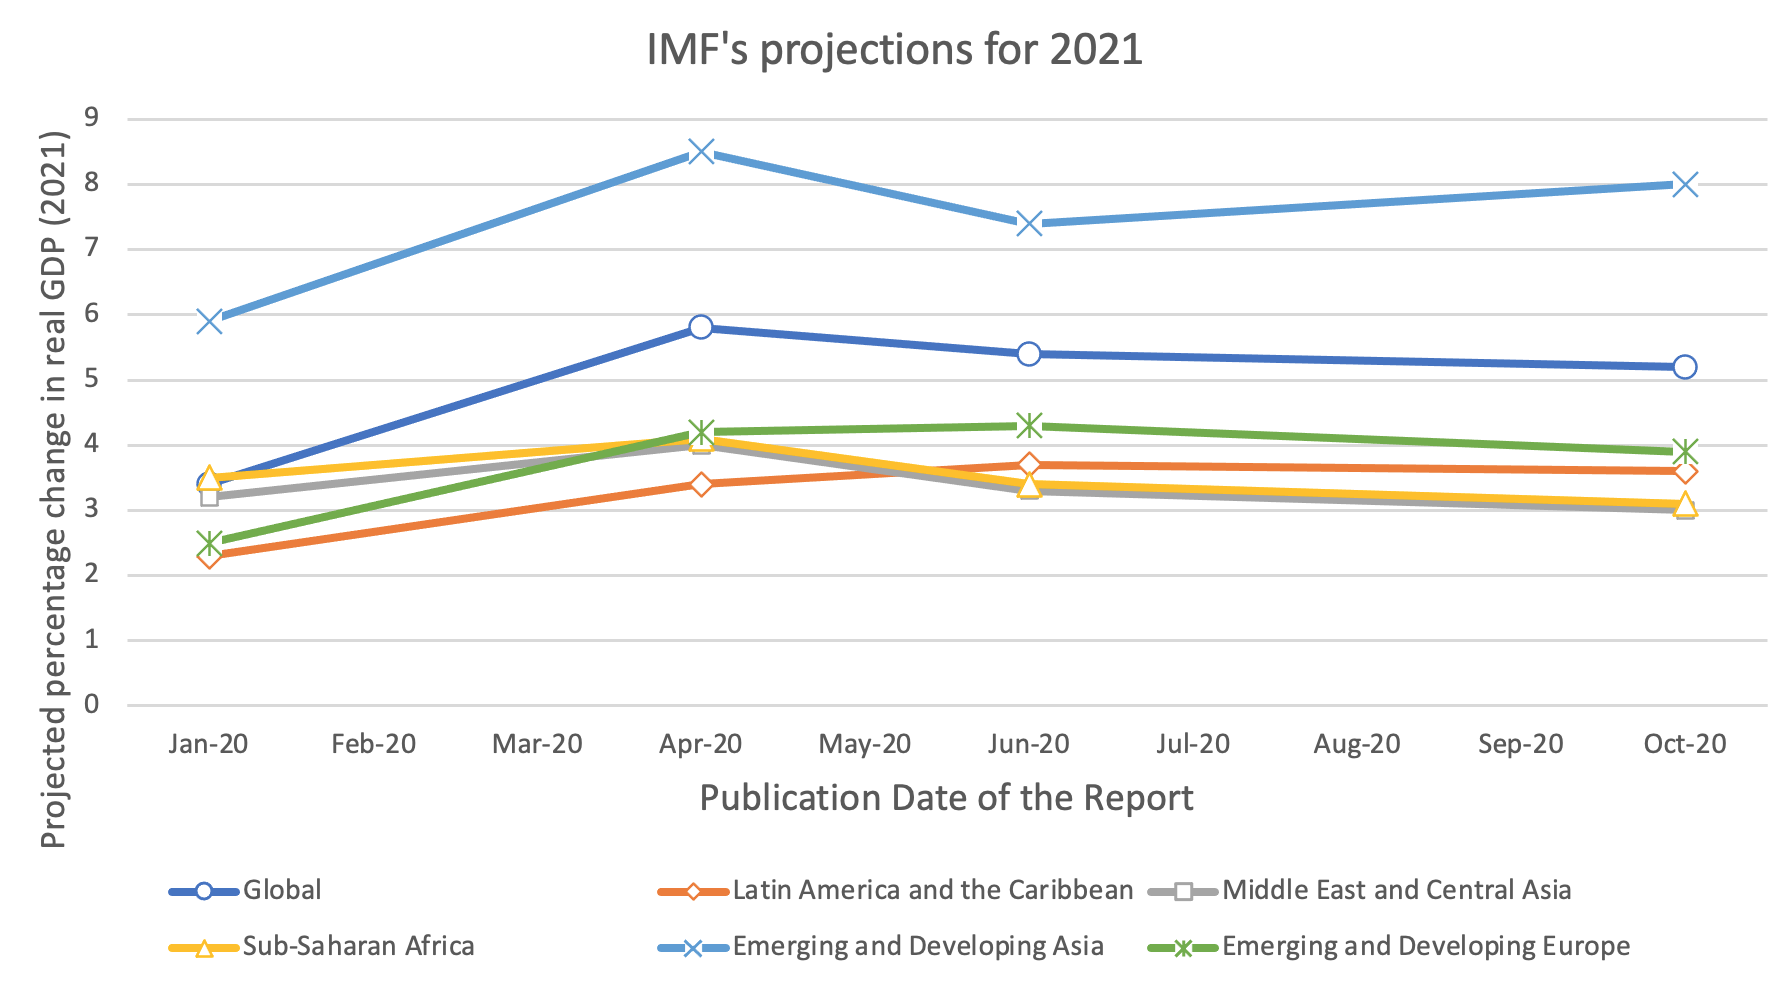 IMF projections for 2021 remain much higher than 2020 and have remained steady, even in the October 2020 release.